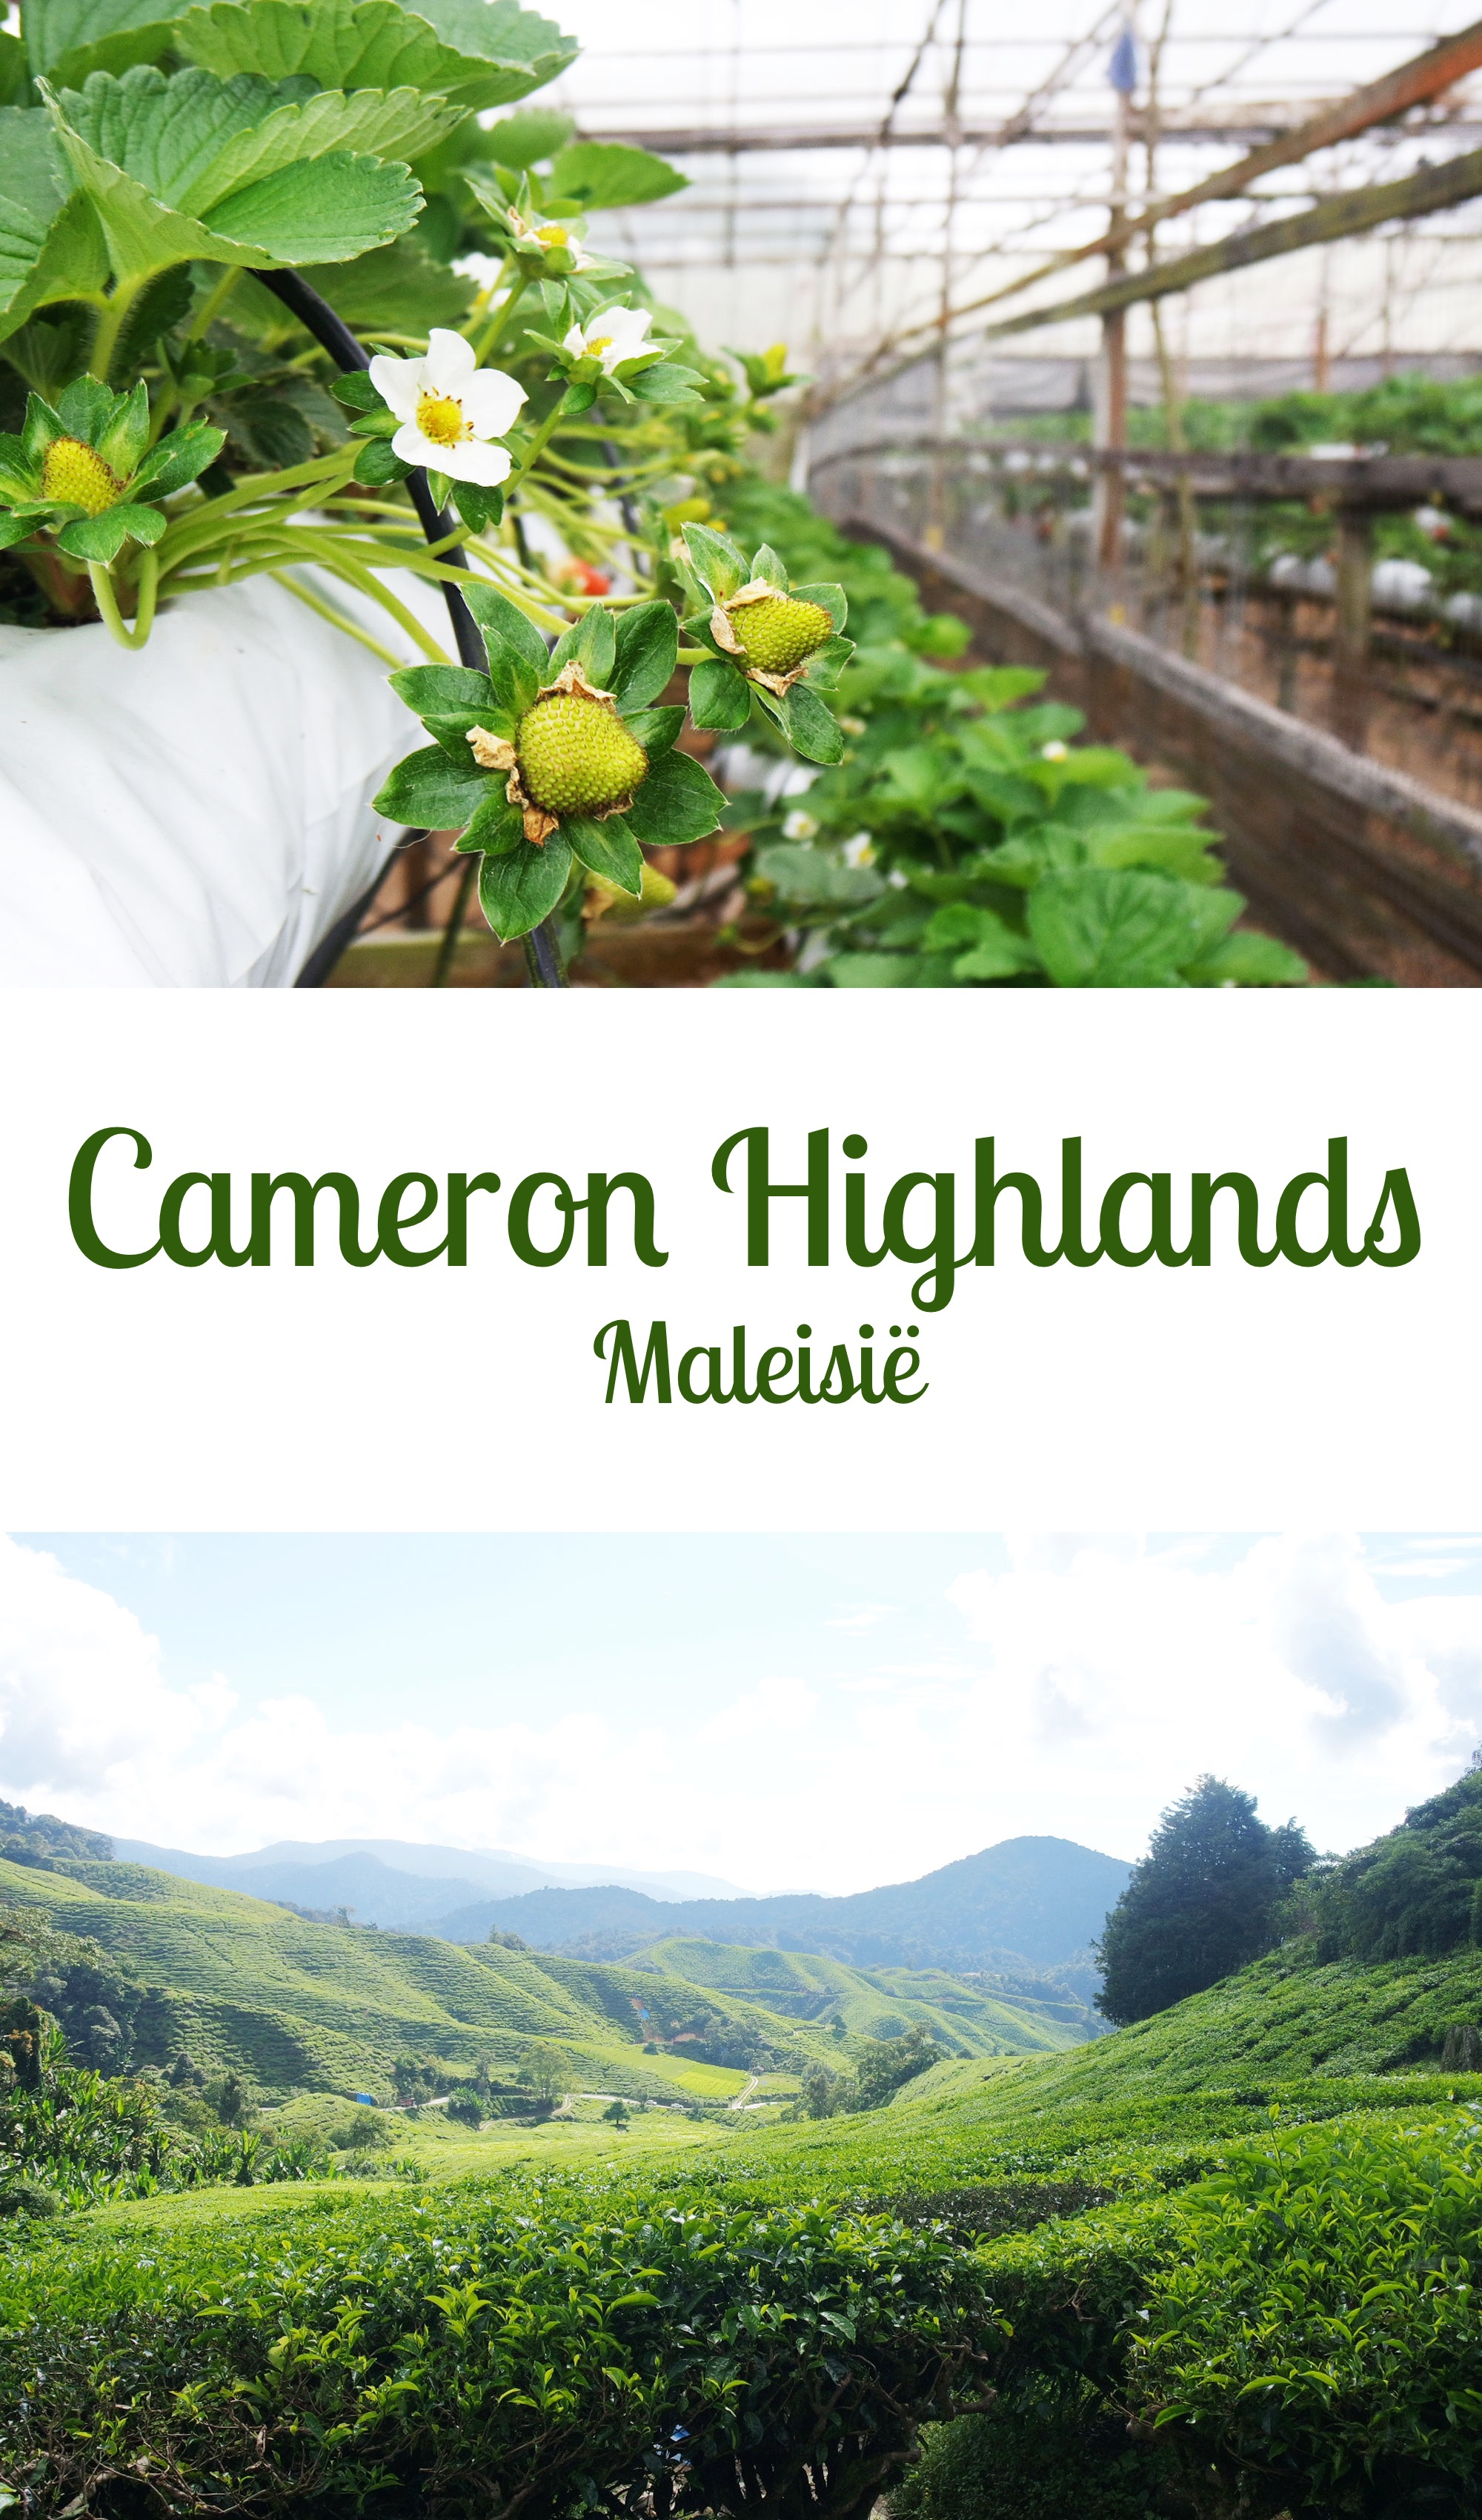 Maleisië - Cameron Highlands